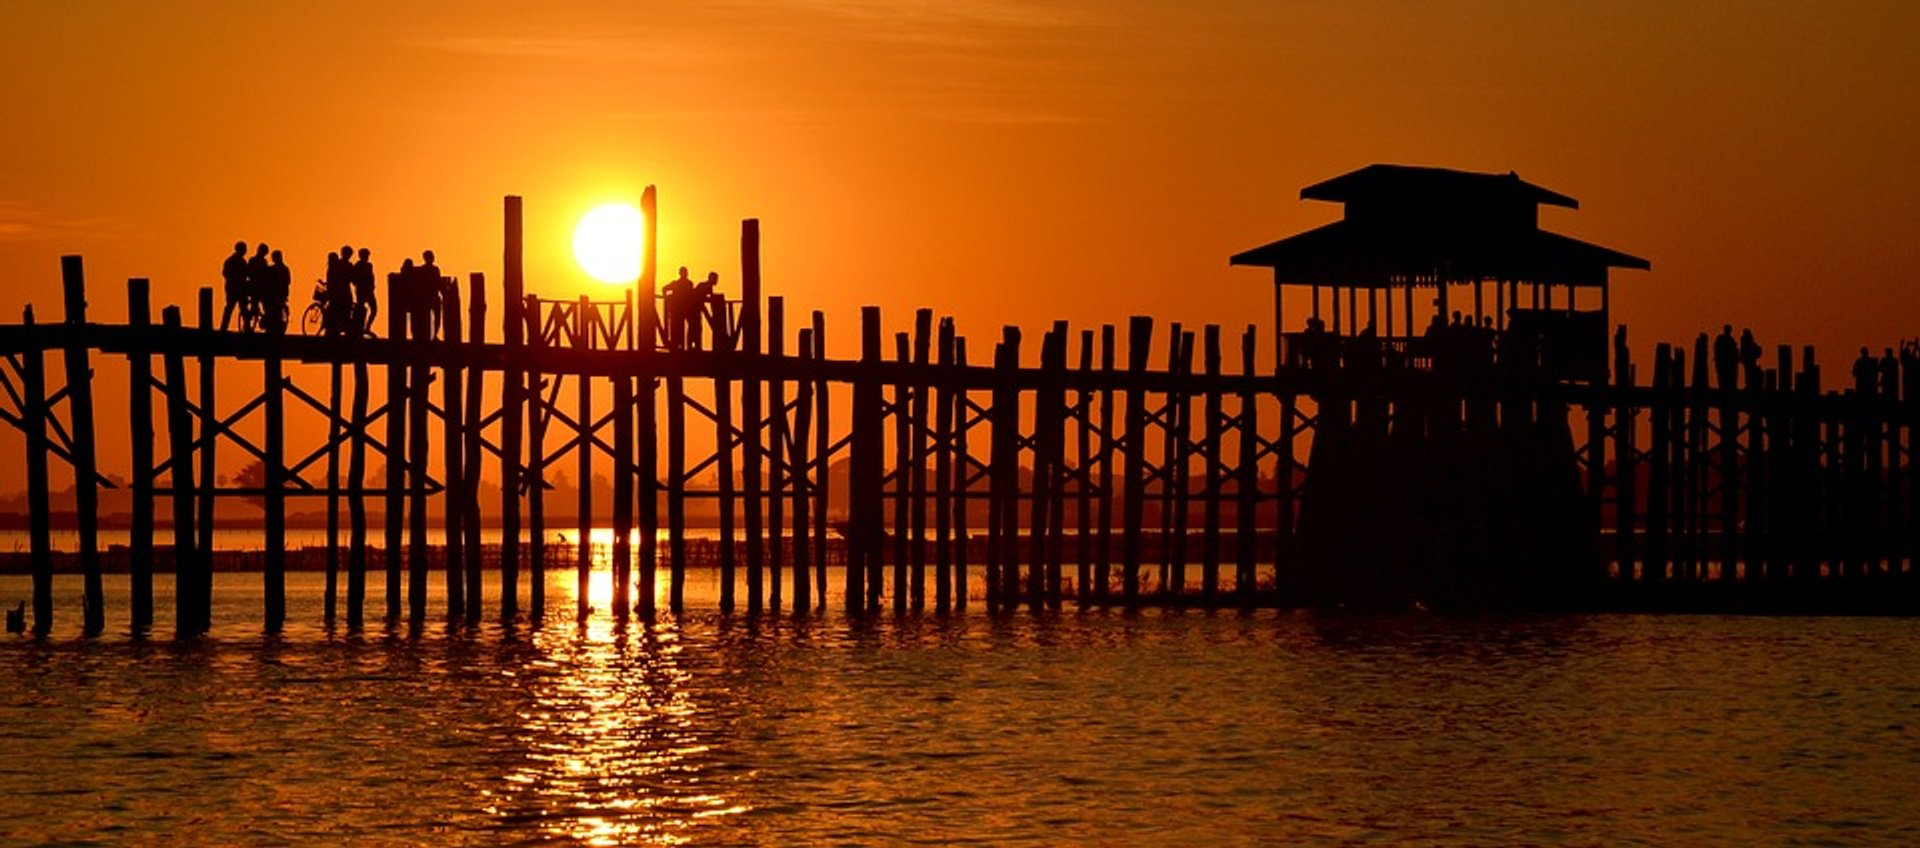 U Bein Bridge in Myanmar 2019 - Best Time